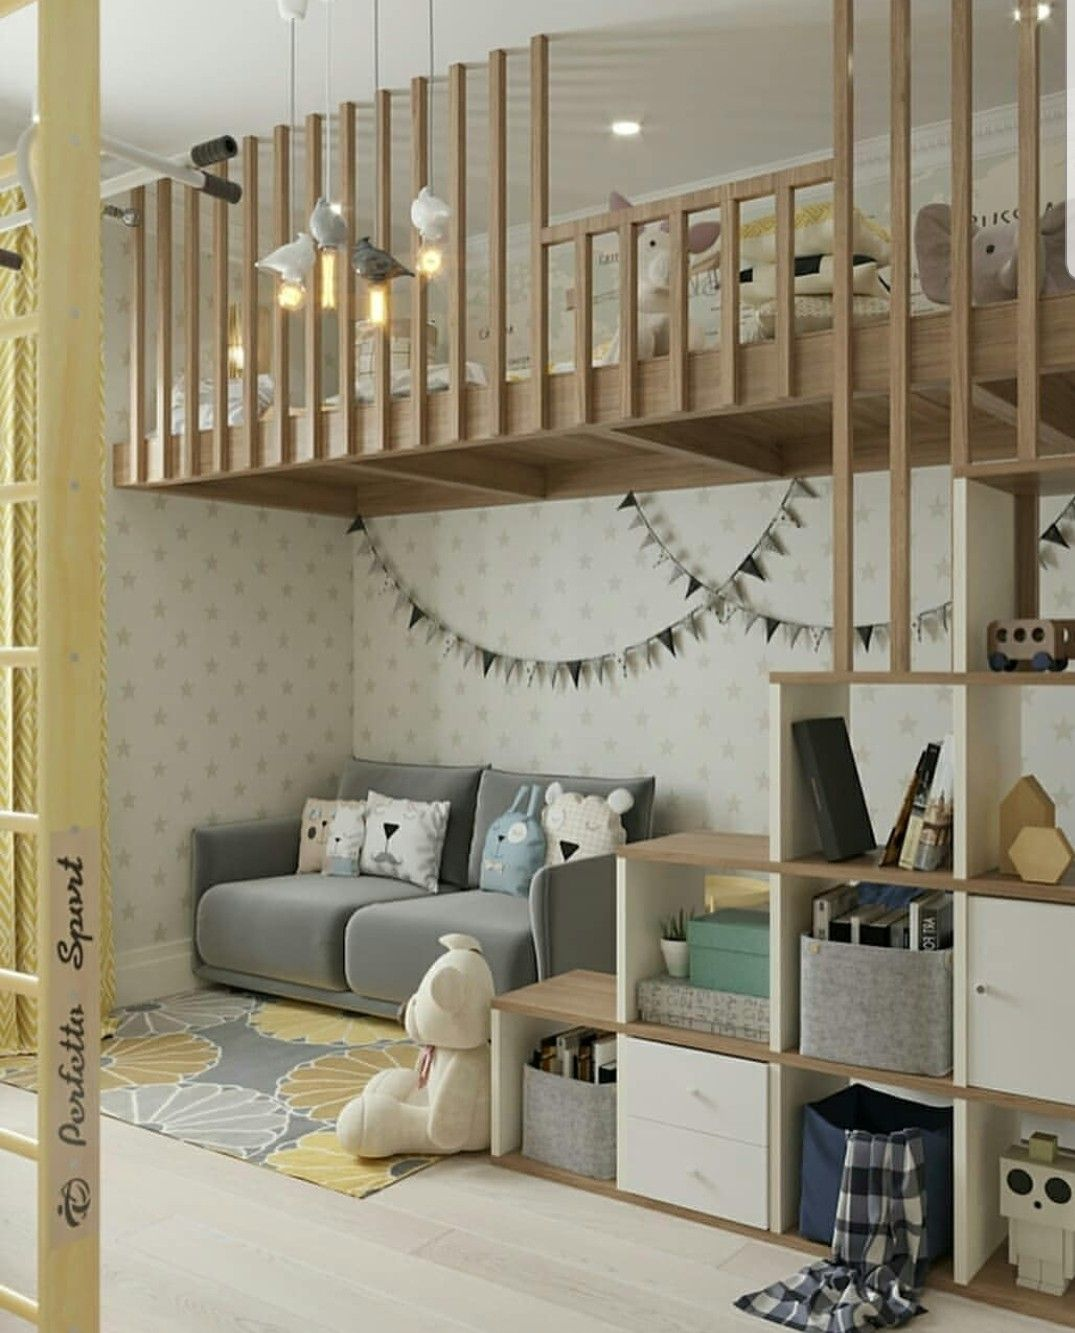 lovely and simple kids bedroom design. #kidsbedroom #functional #bedroomdesign #homedesign #bedroomideas #kidsbedroomsandthings